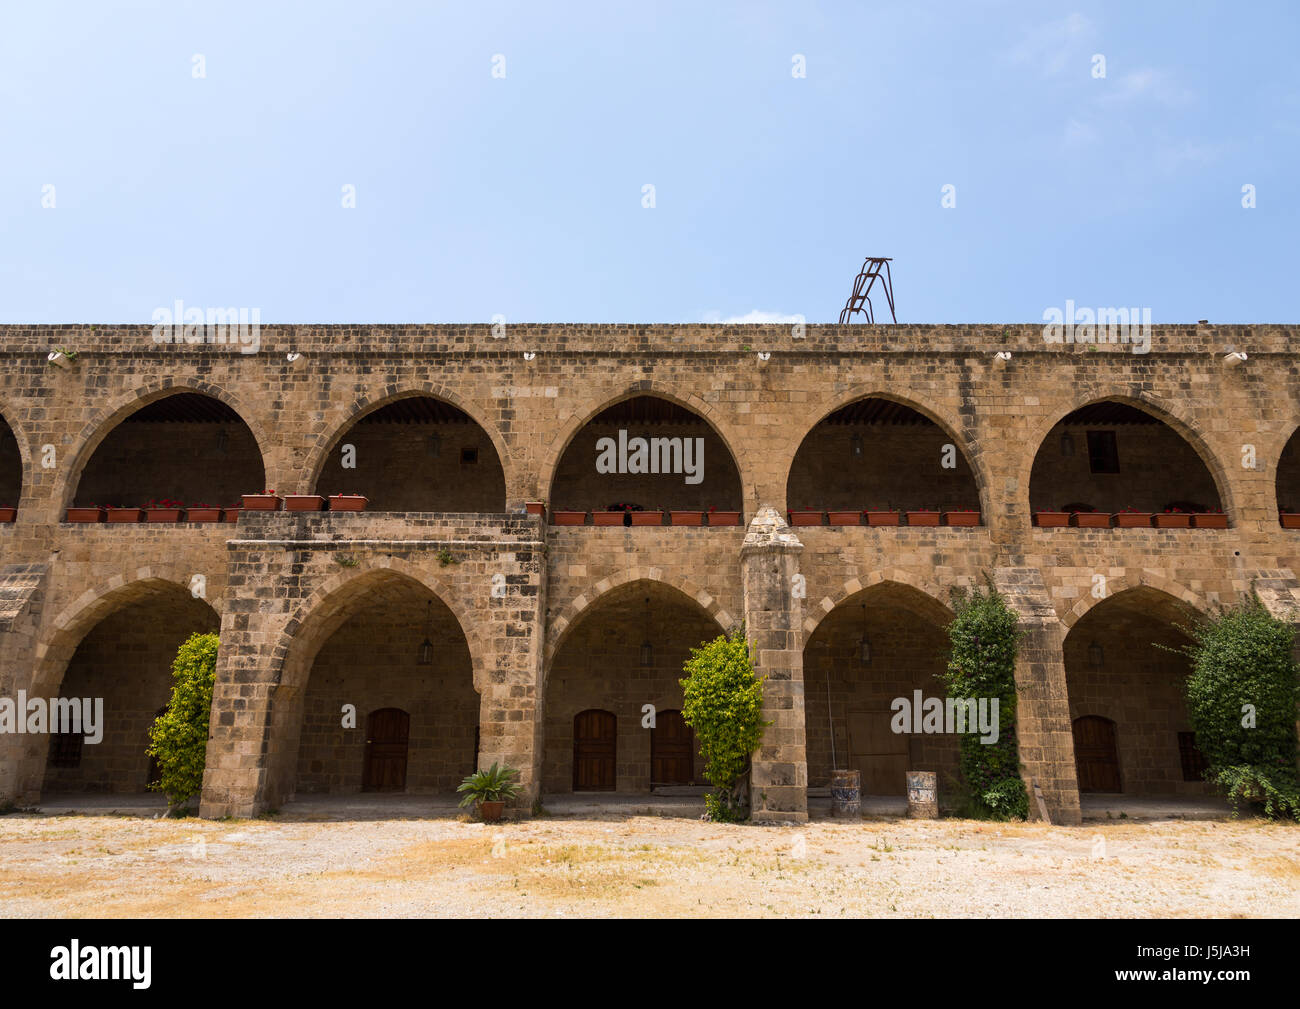 Khan el-franj caravanserai, South Governorate, Sidon, Lebanon - Stock-Bilder